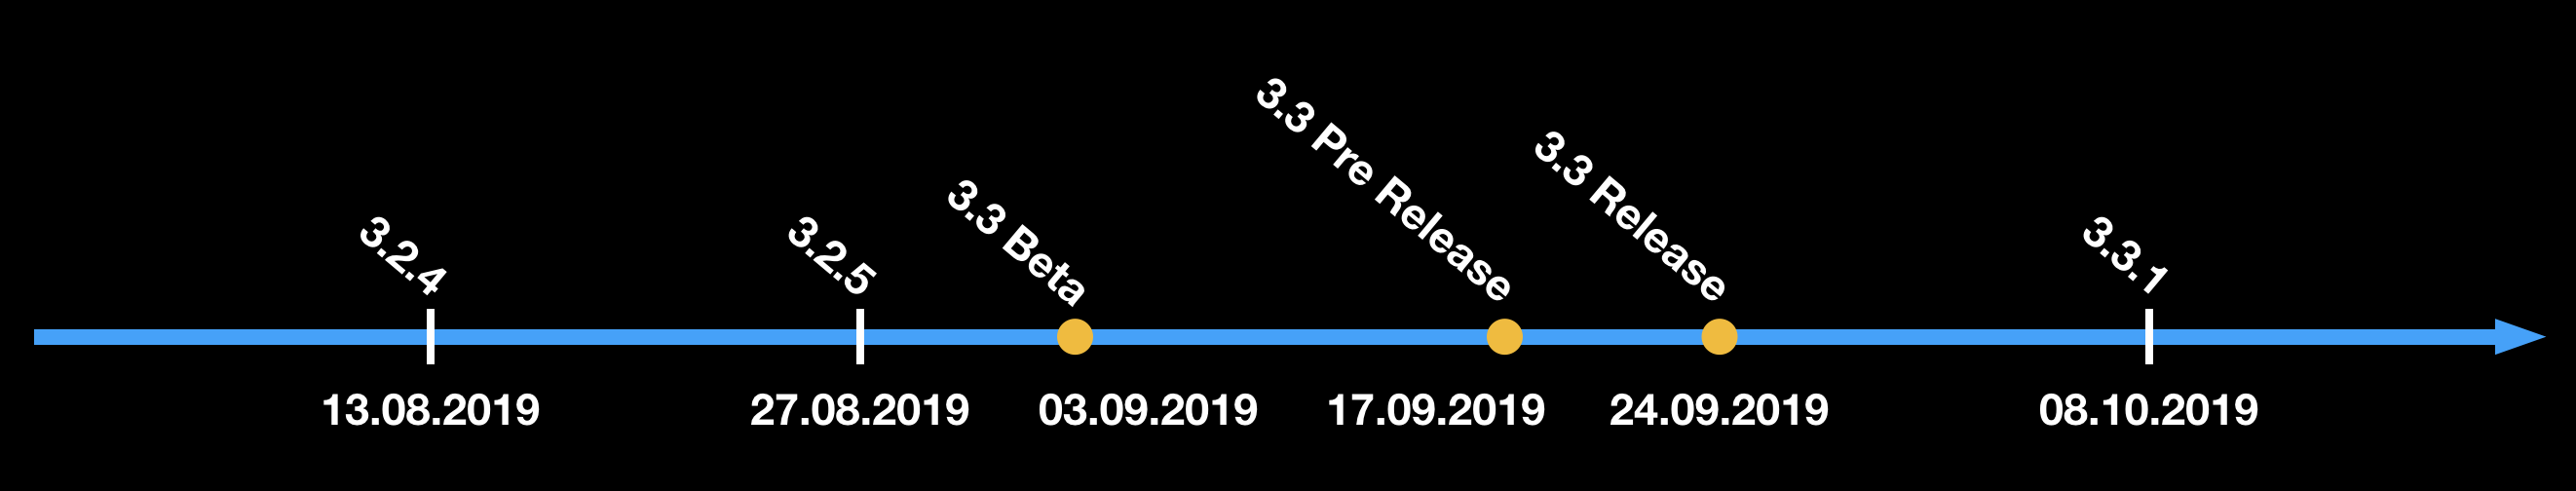 Releases Timeline